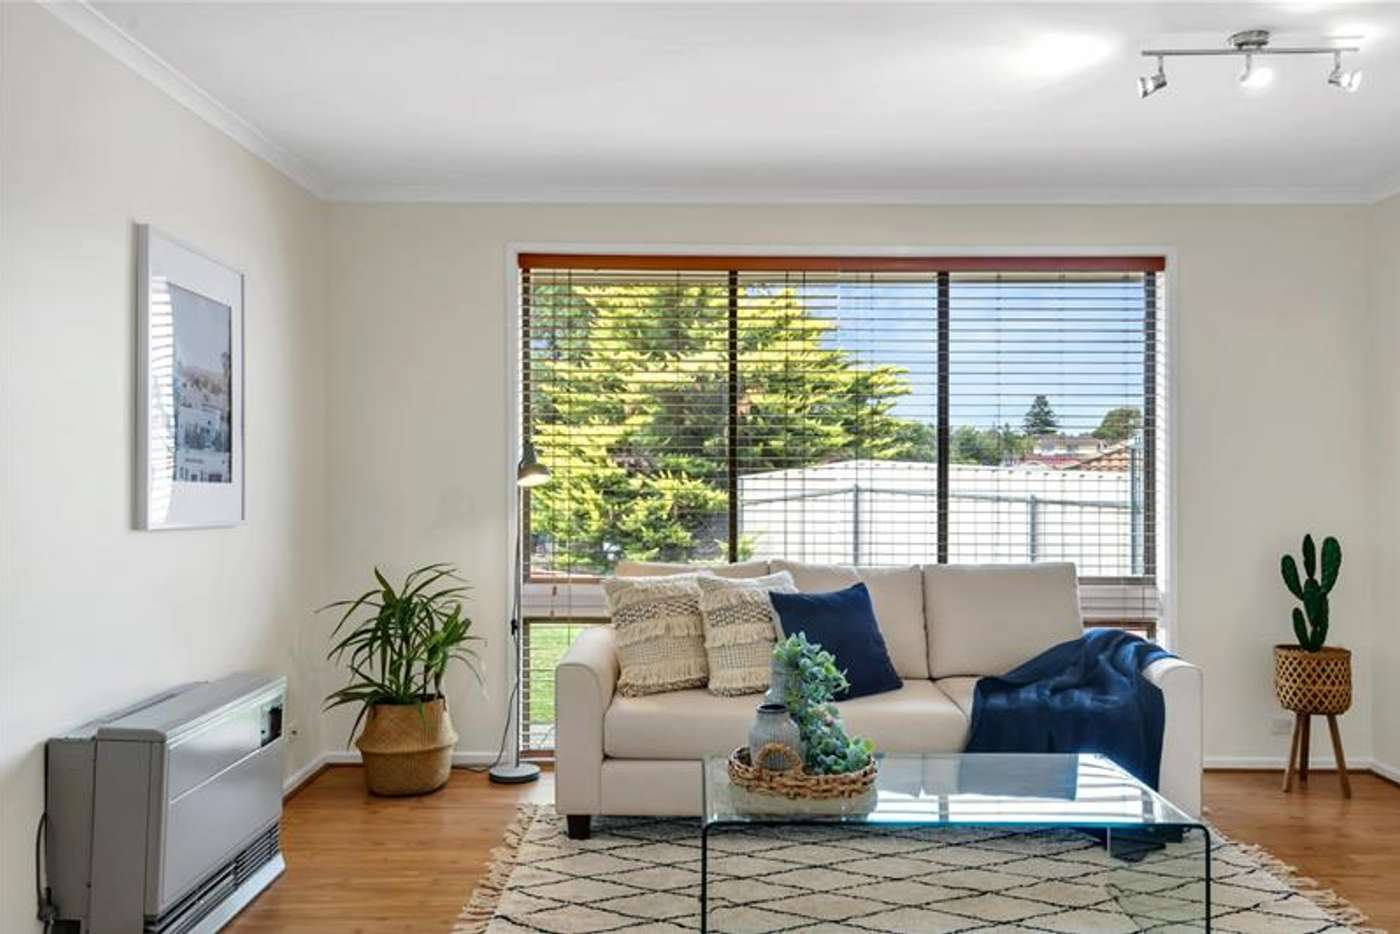 Fifth view of Homely house listing, 5 Thames Court, Modbury Heights SA 5092